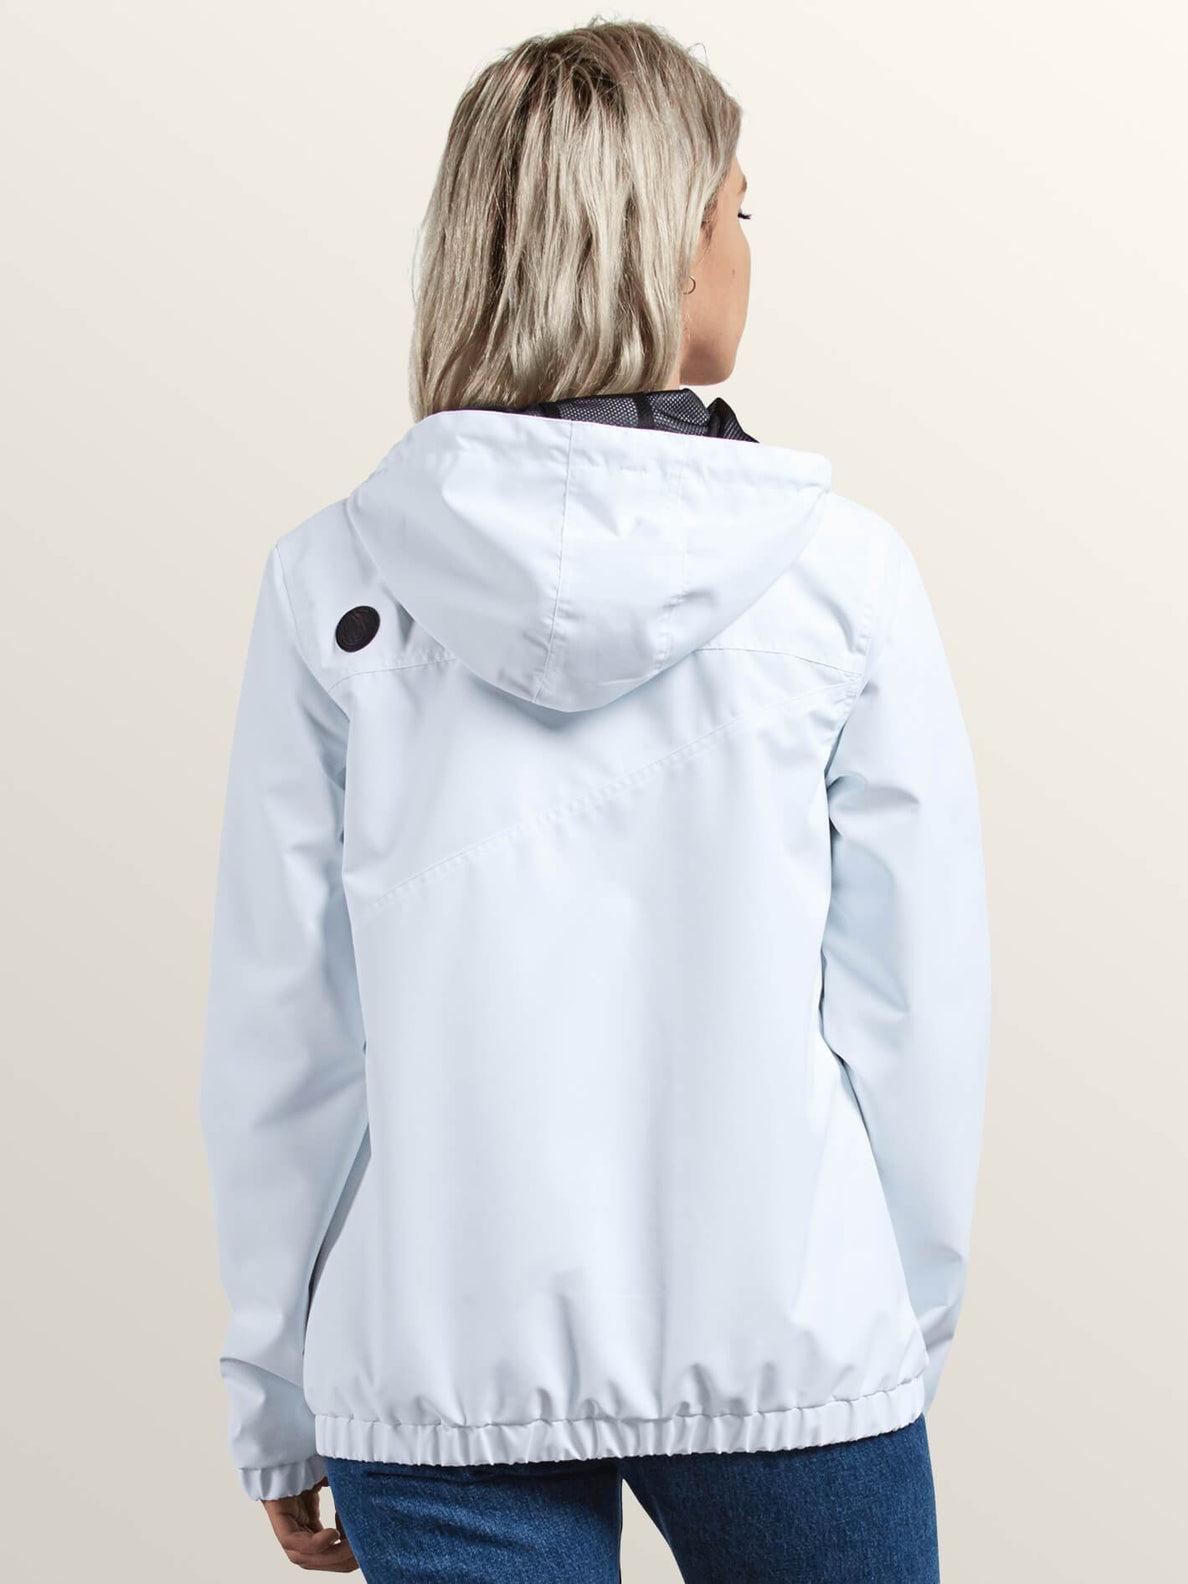 Enemy Stone Jacket In White, Back View